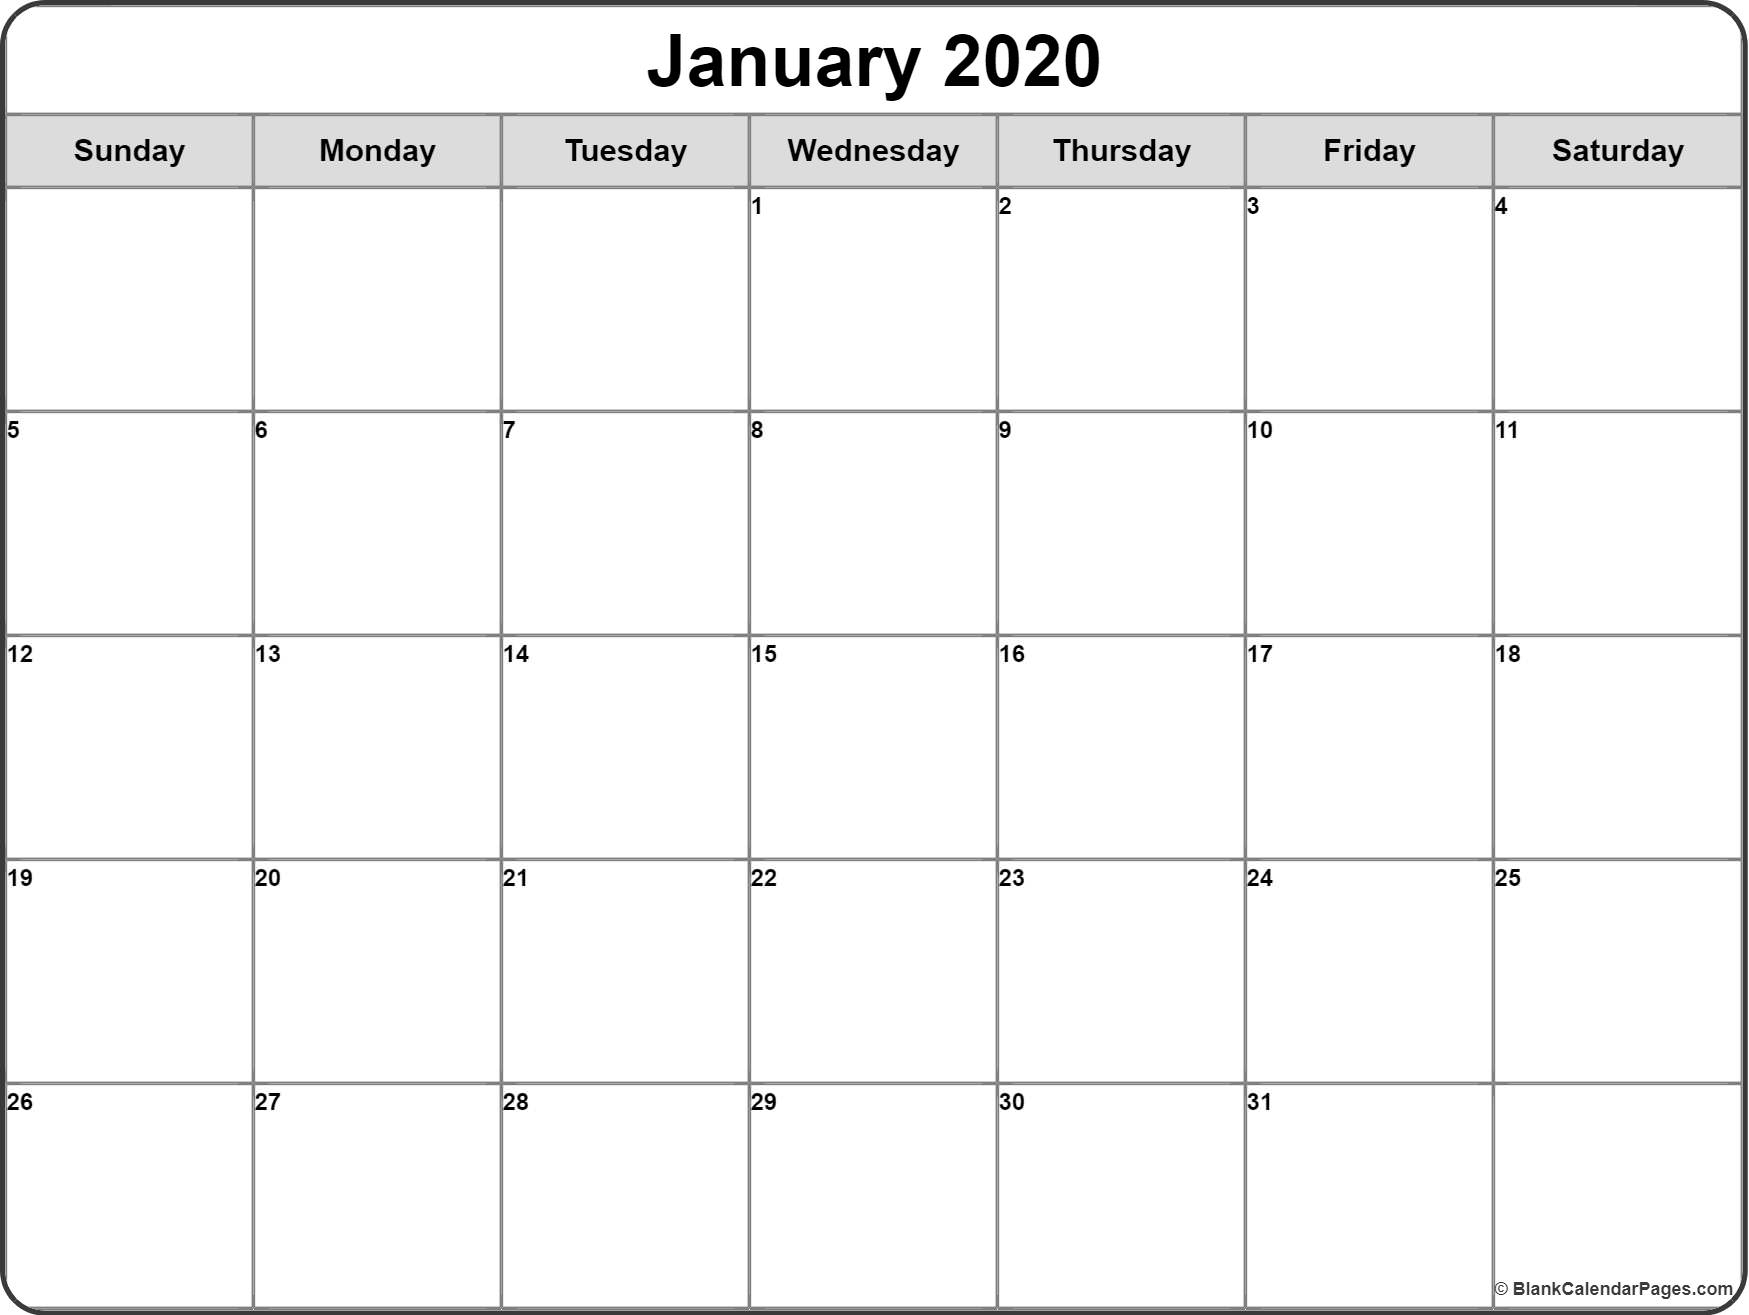 January 2020 Calendar | Free Printable Monthly Calendars in 2020 Printable Calendar By Month